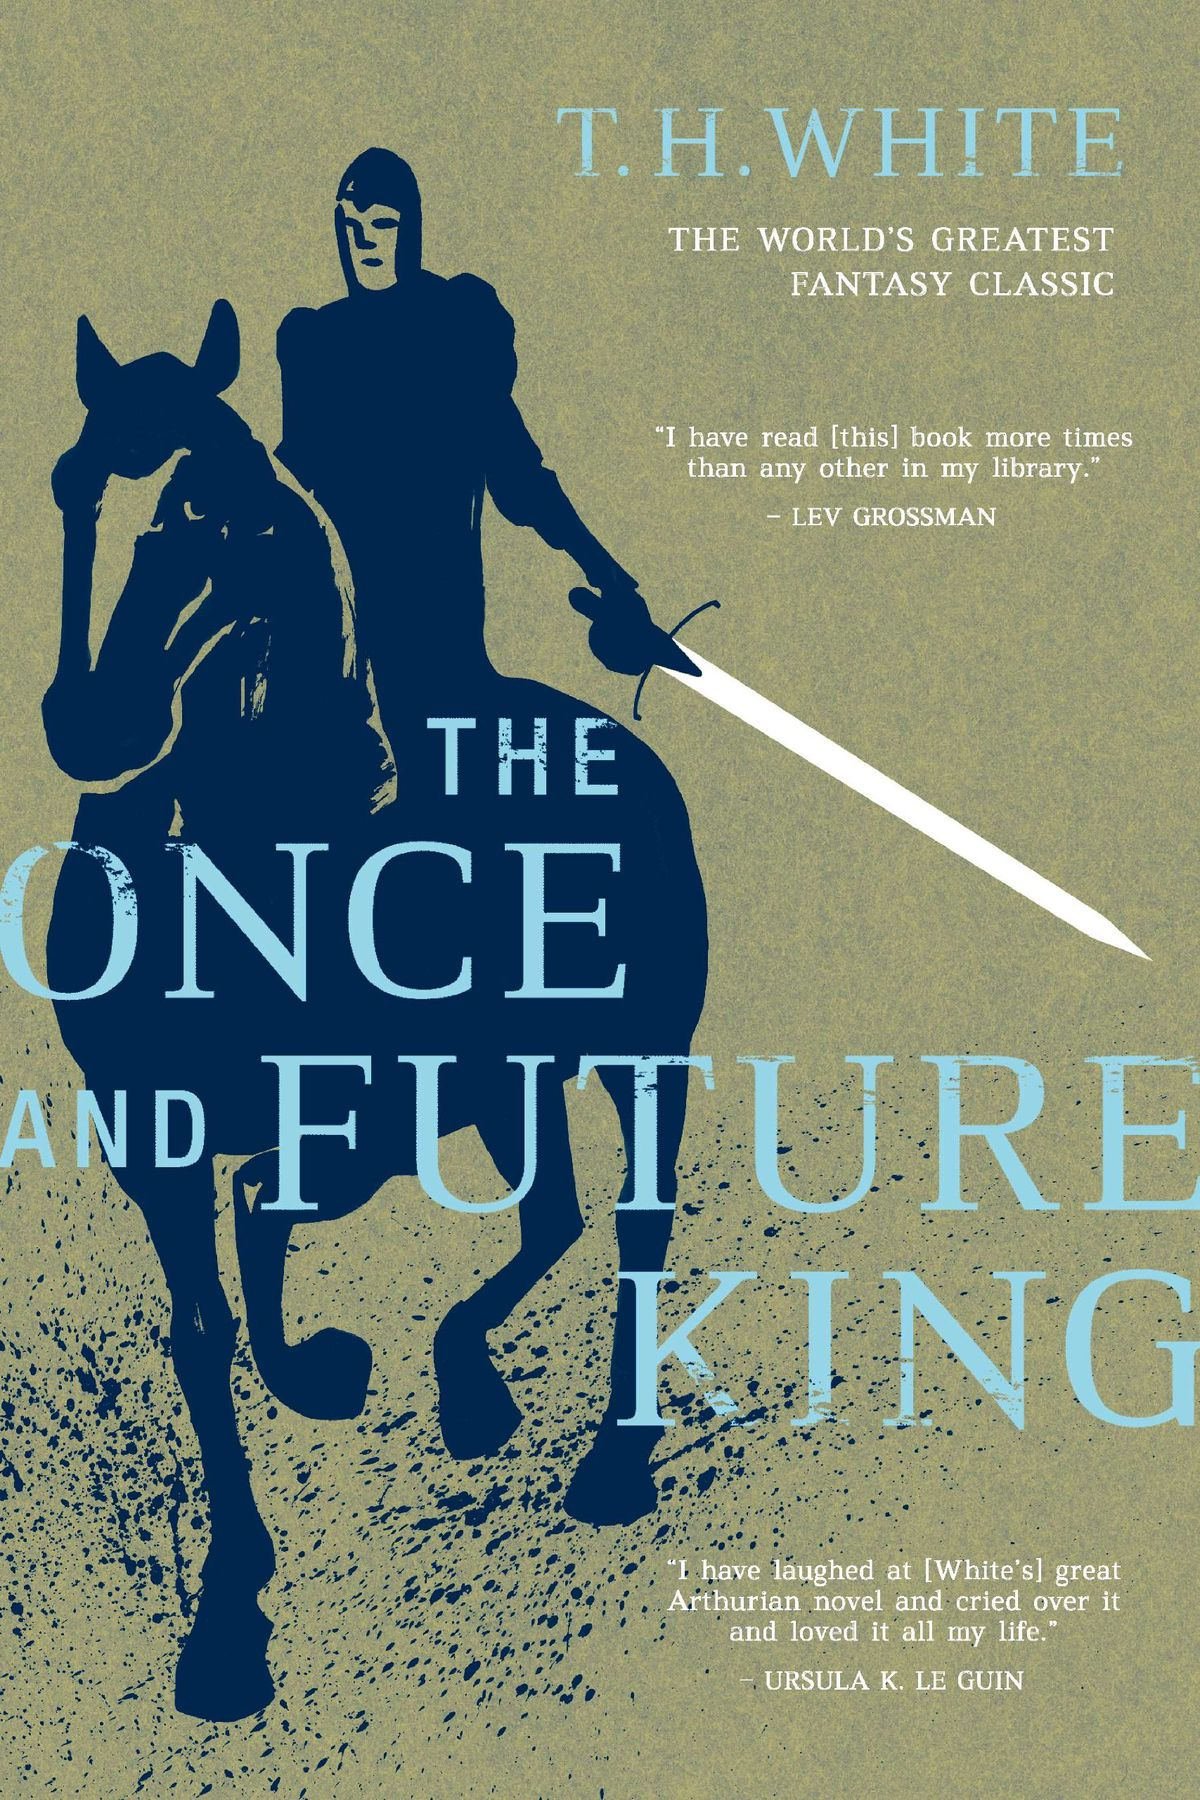 The cover of The Once And Future King